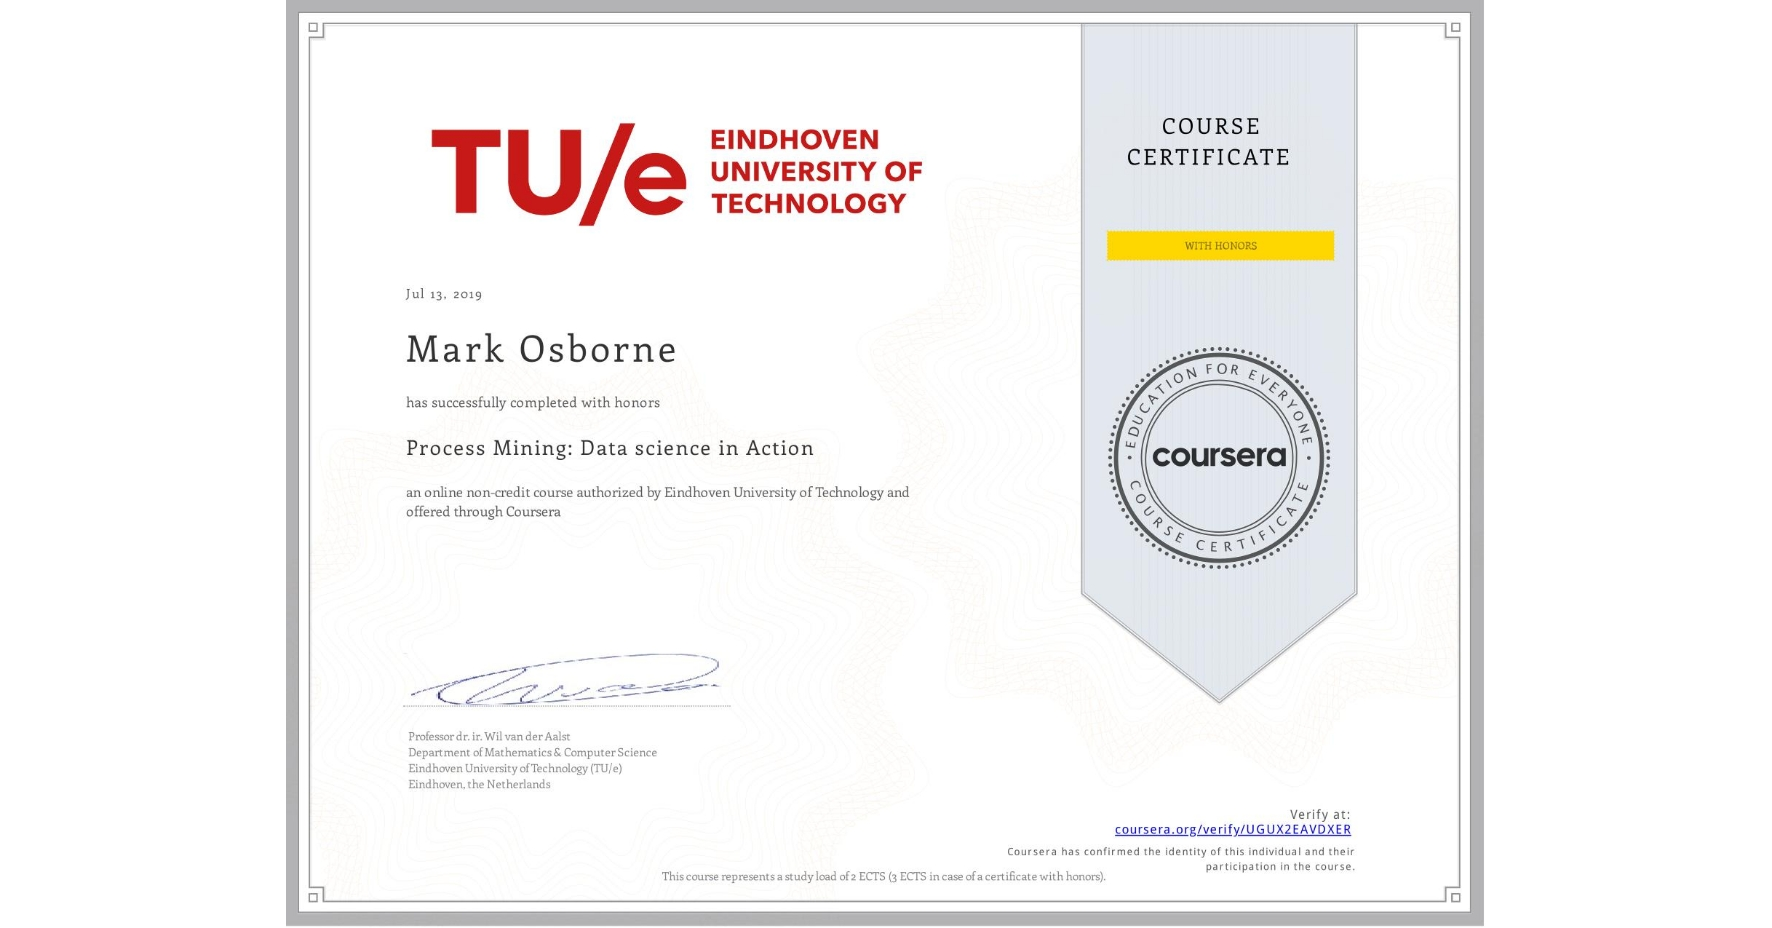 View certificate for Mark Osborne, Process Mining: Data science in Action, an online non-credit course authorized by Eindhoven University of Technology and offered through Coursera